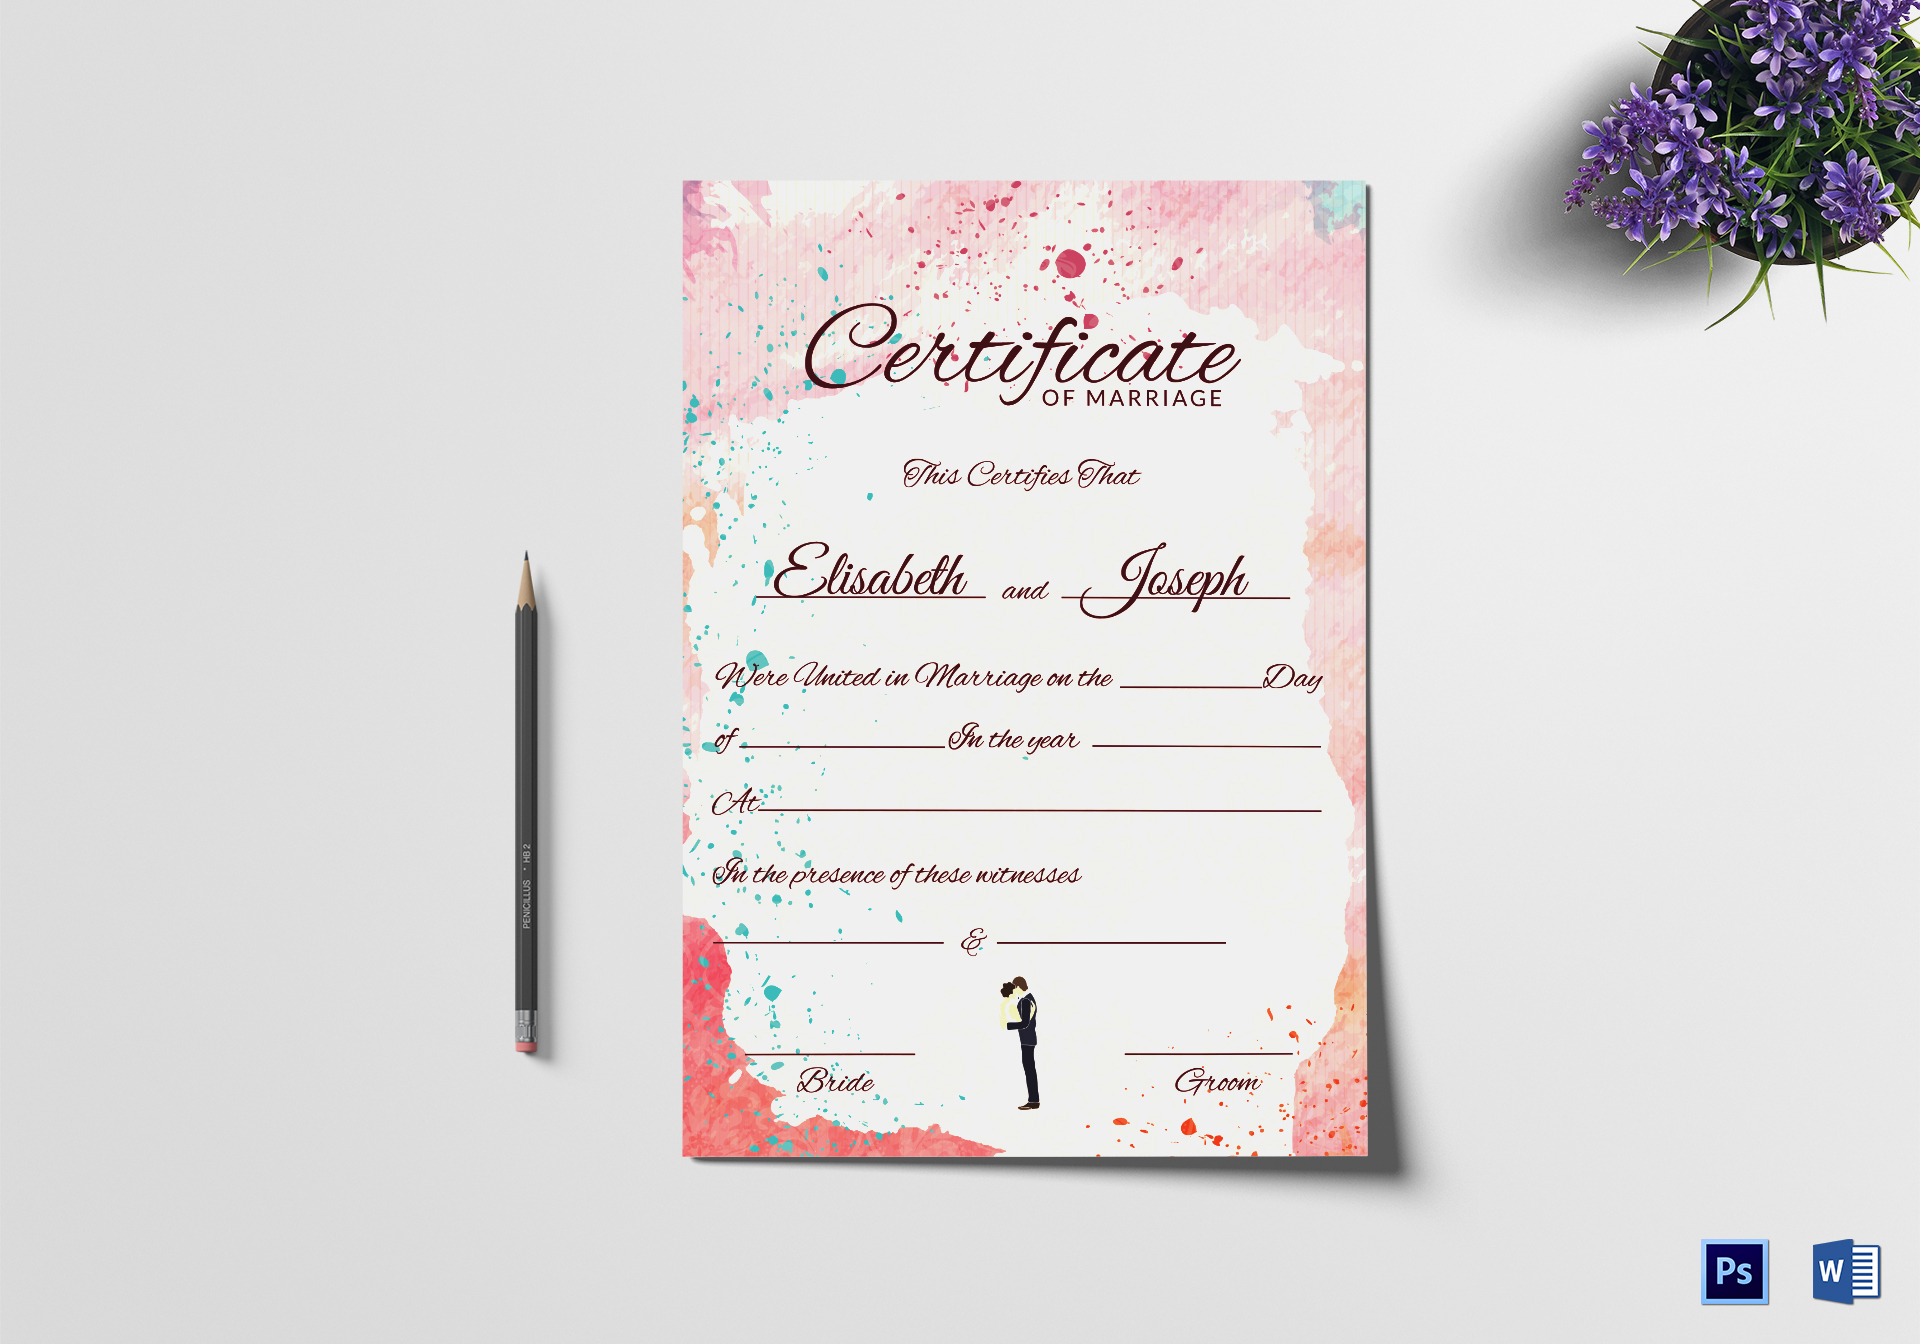 Christian marriage certificate design template in psd word traditional marriage certificate template alramifo Image collections